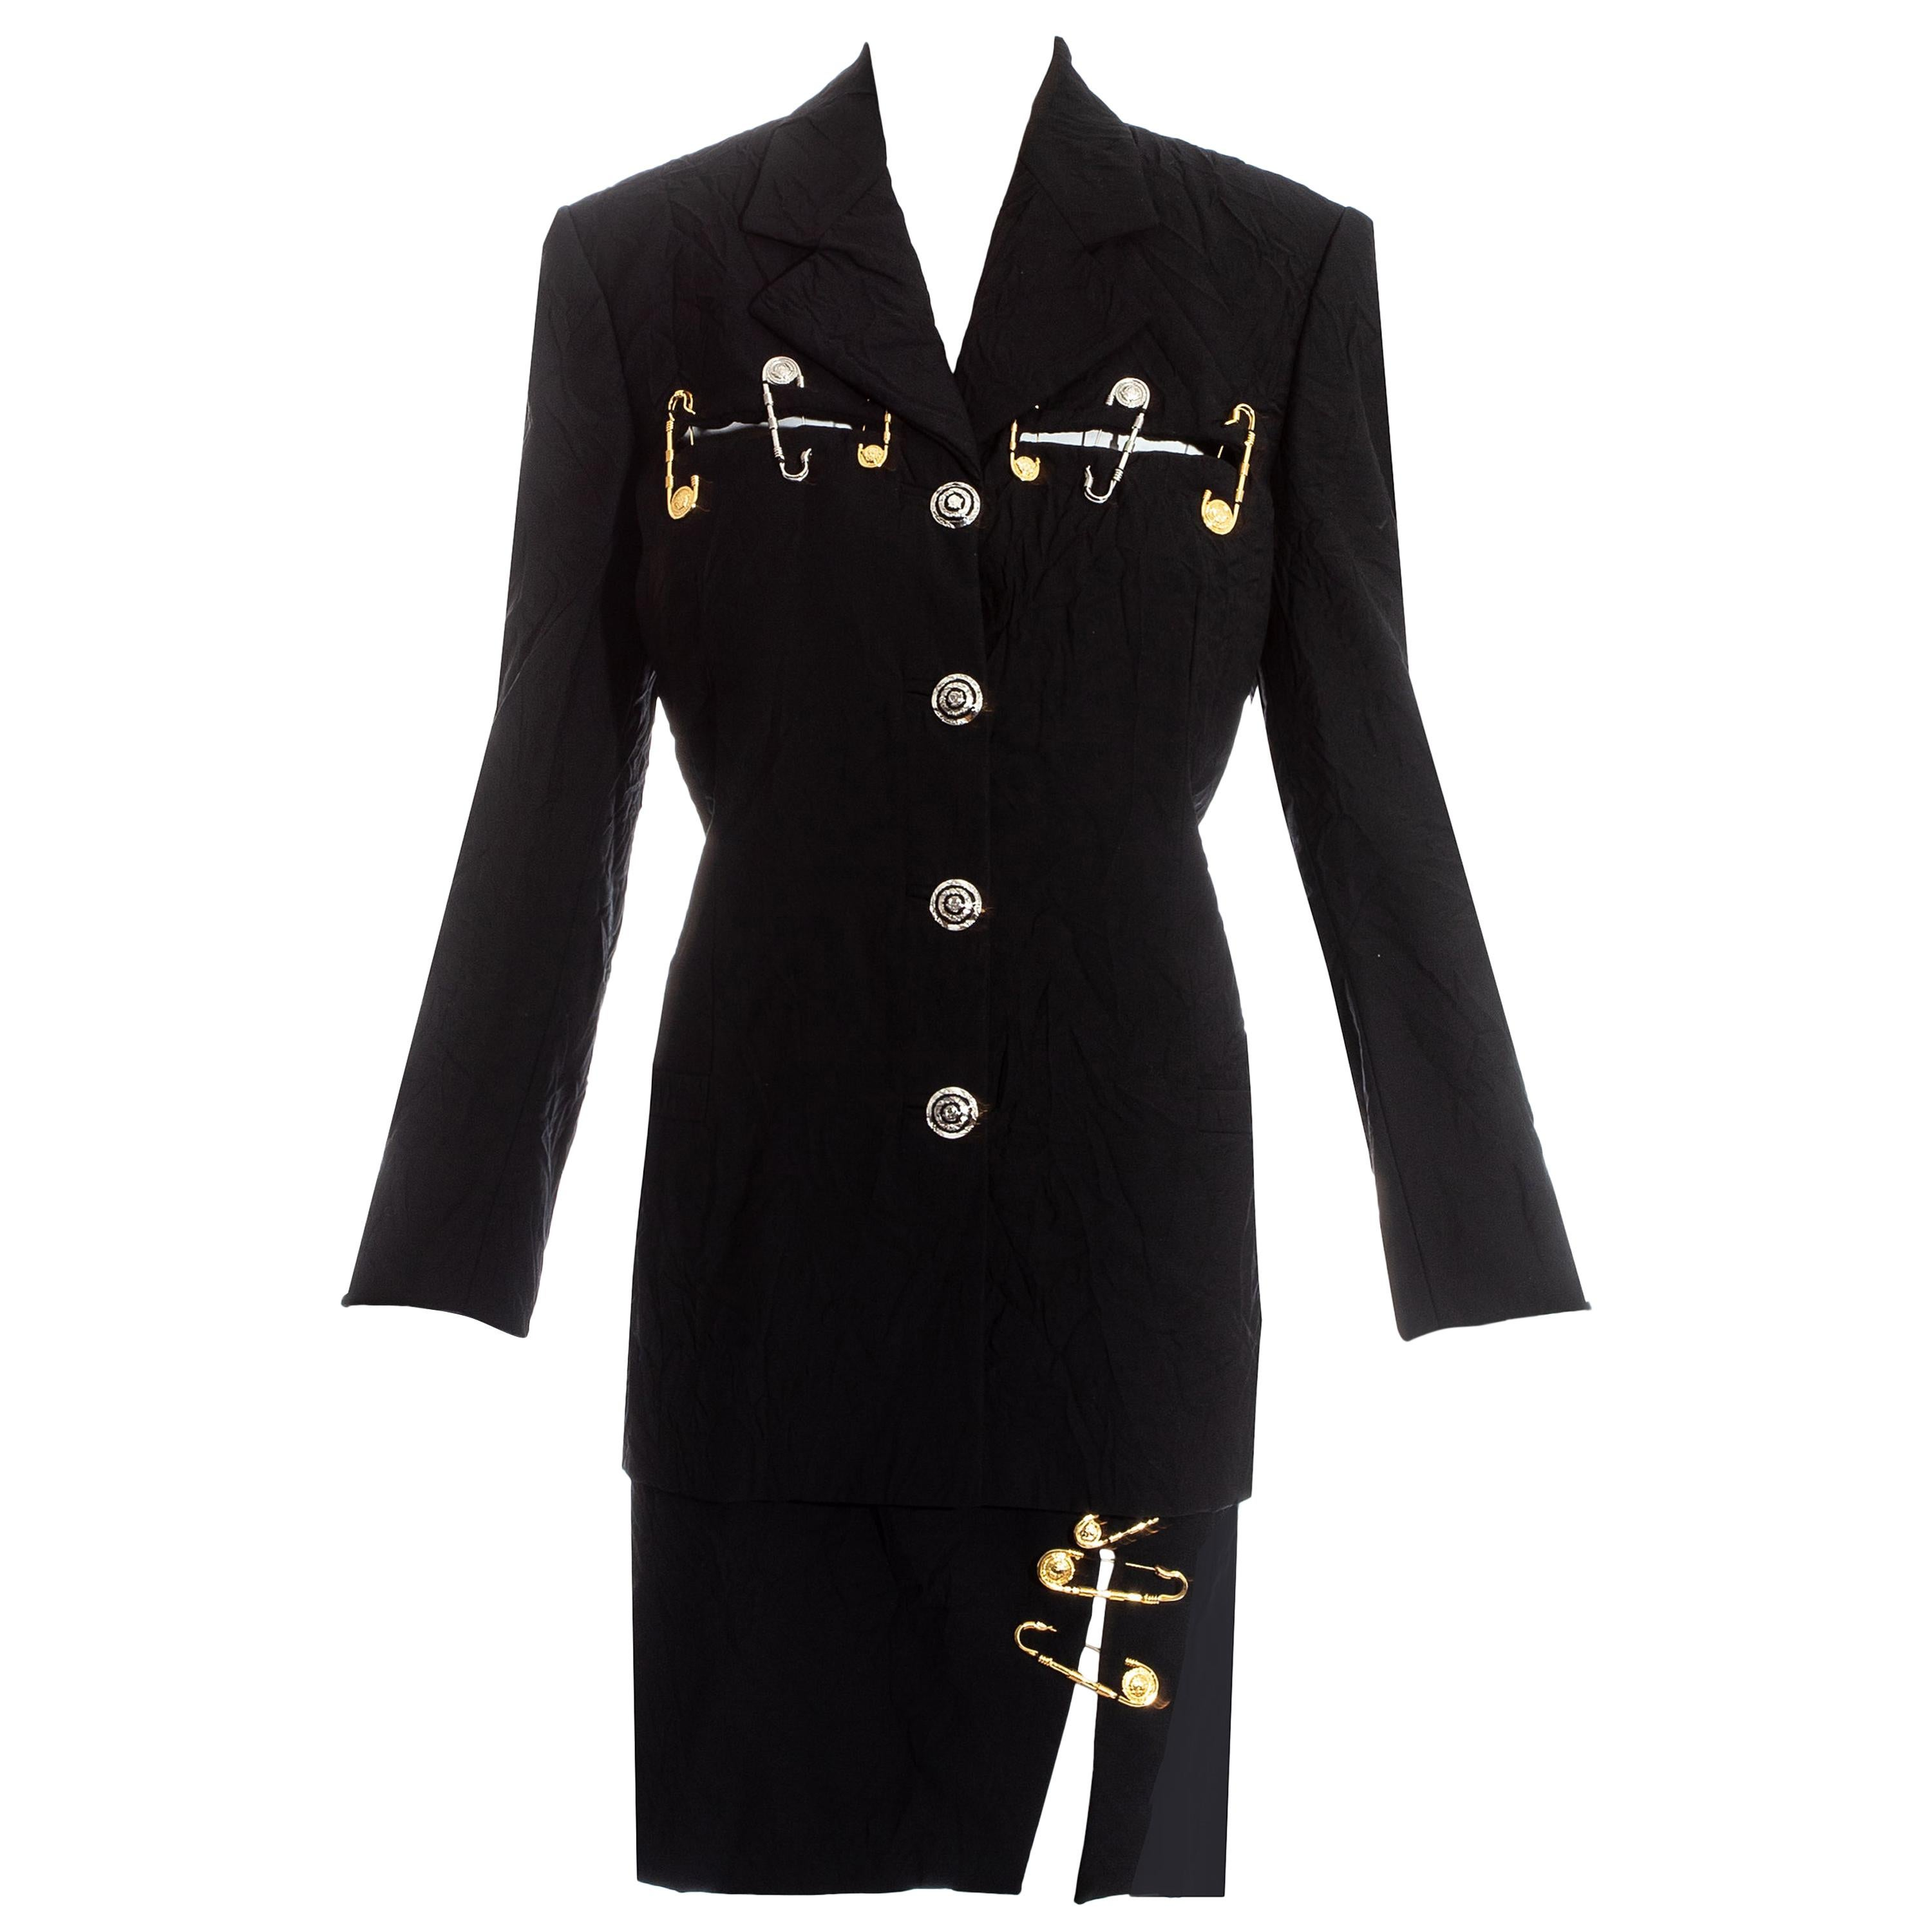 7a914e3c0a Gianni Versace black crinkled safety pin skirt suit, ss 1994